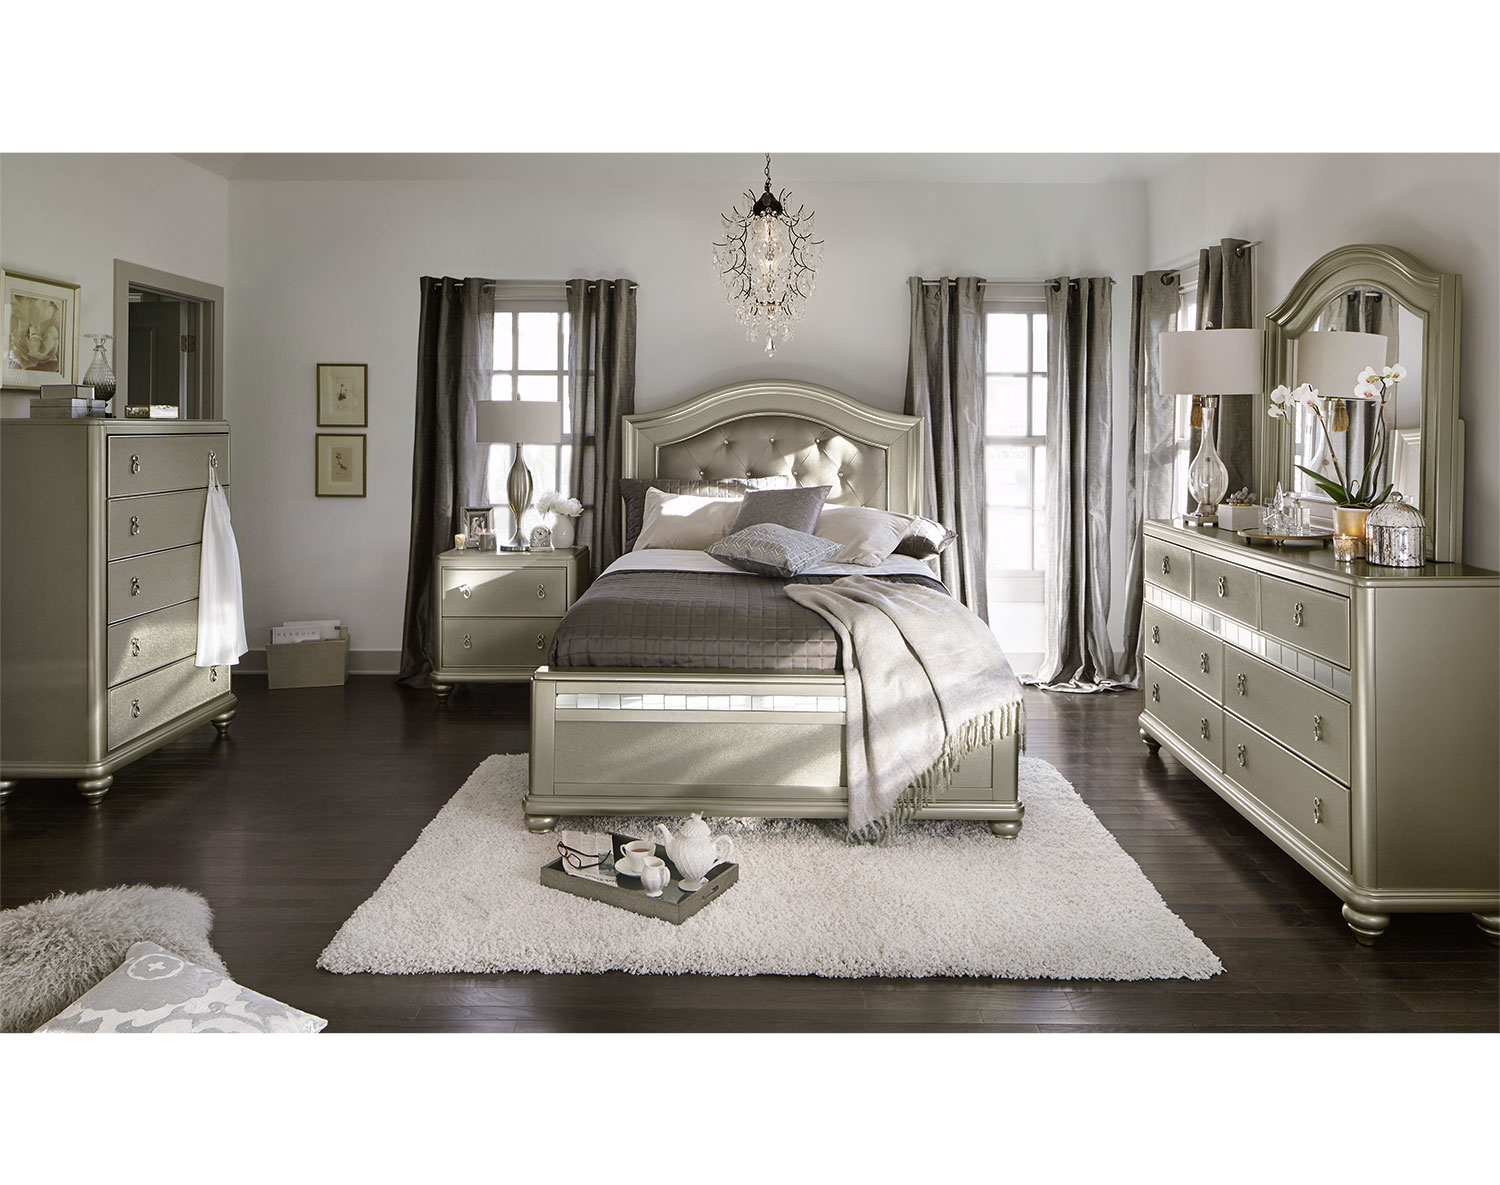 Bedroom Sets Value City the serena collection - platinum | value city furniture